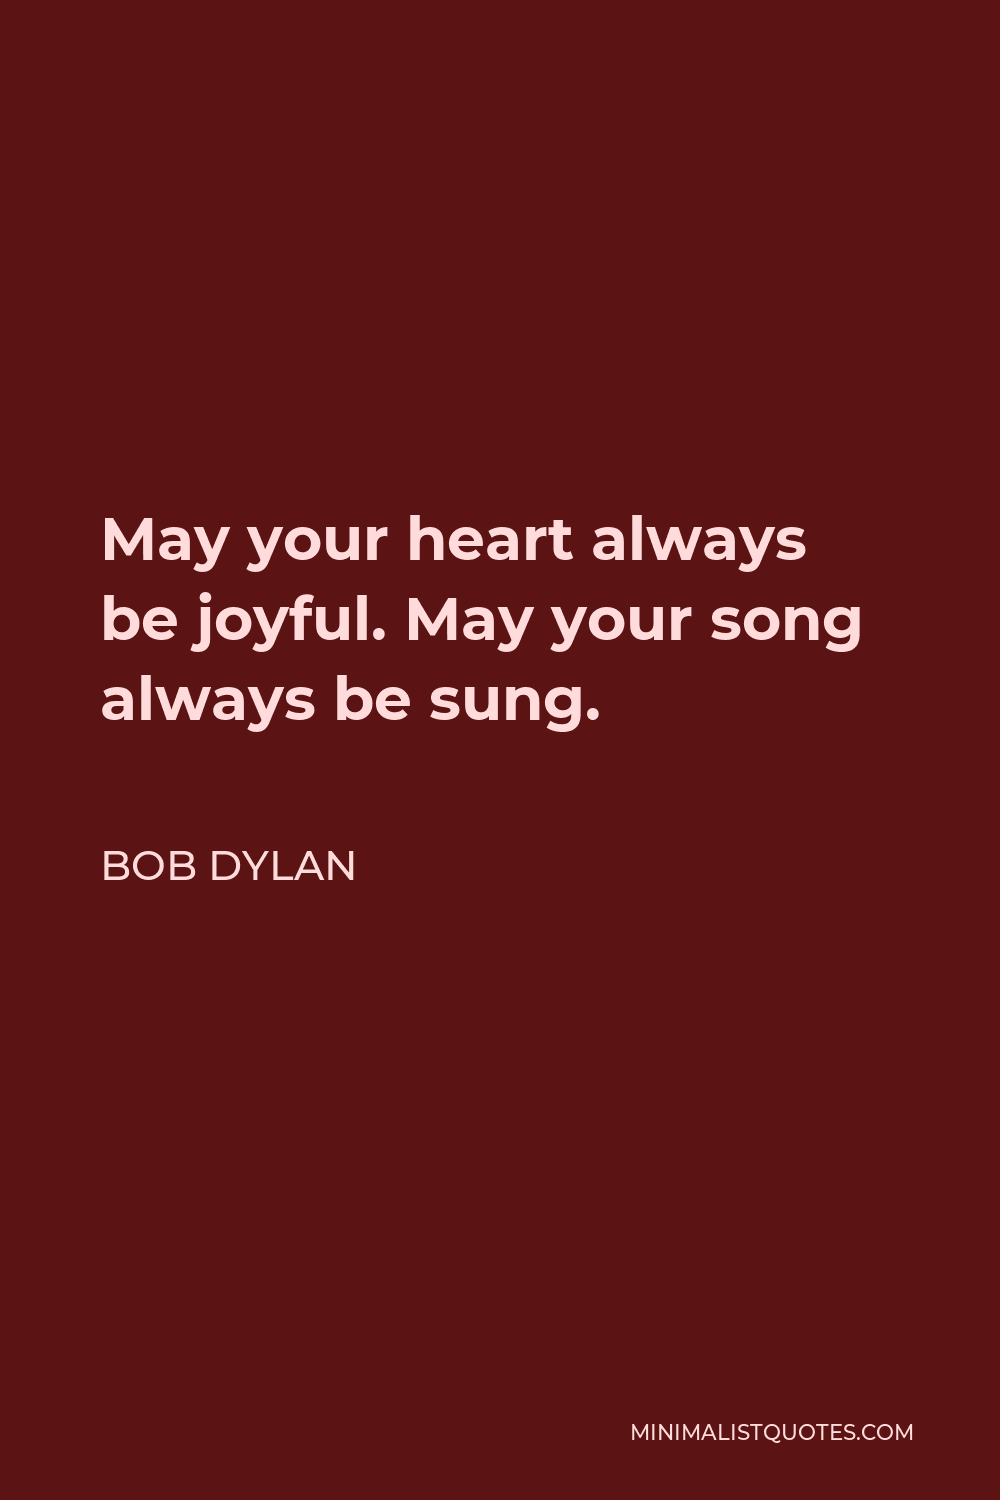 Bob Dylan Quote - May your heart always be joyful. May your song always be sung.